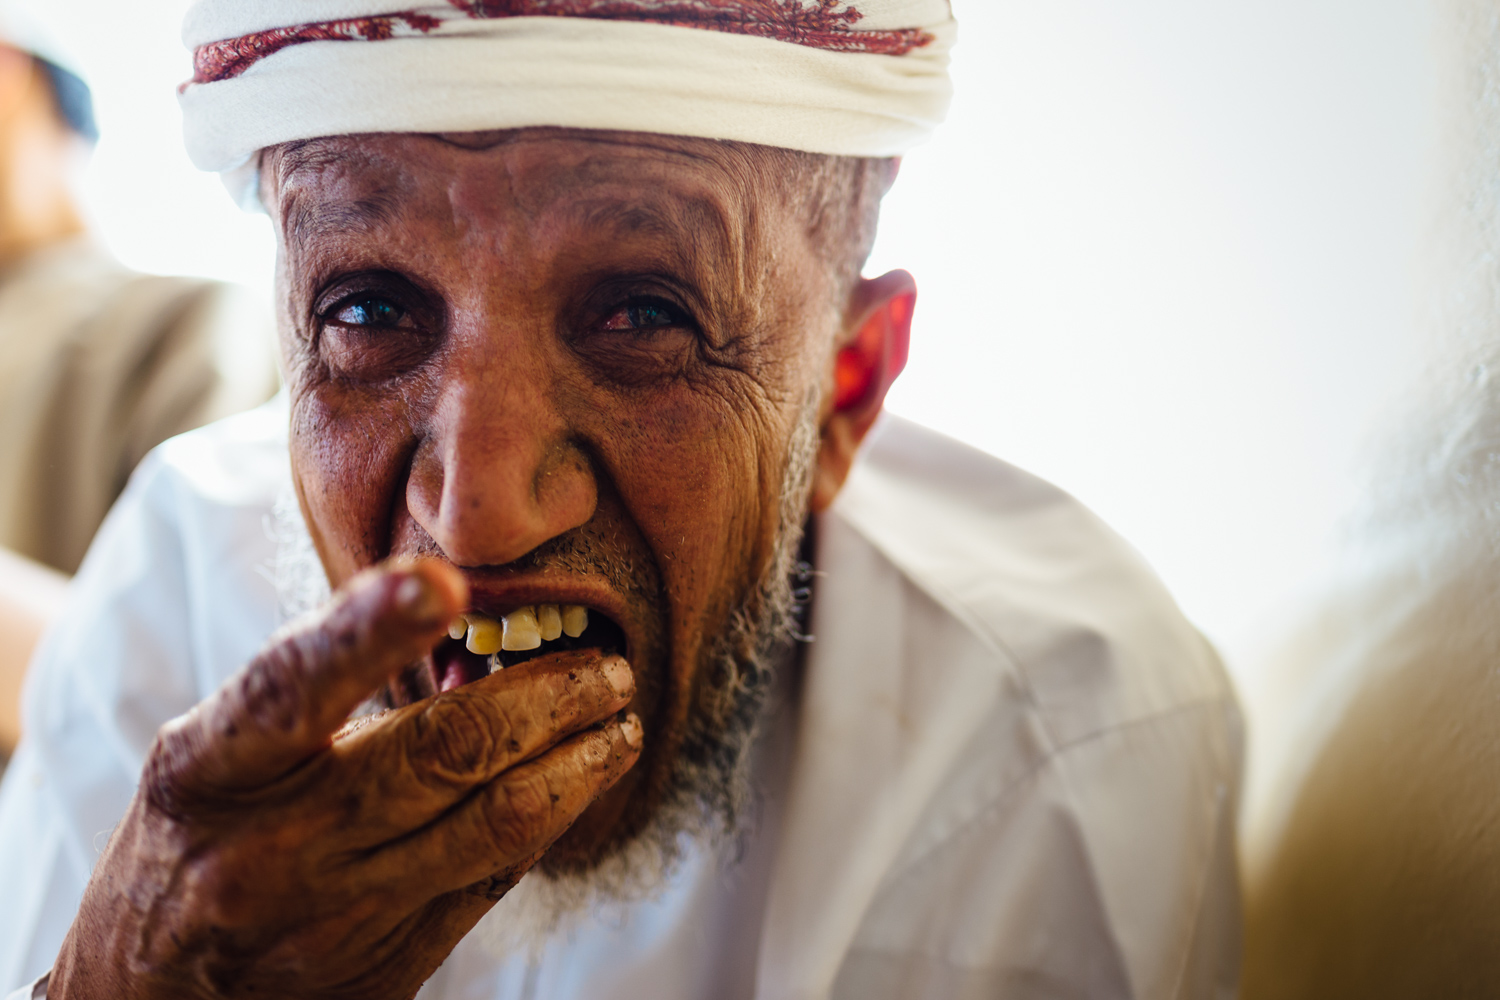 Elder-Elderly-Eating-Feast-Food-Tradition-Village-Oman-Daniel-Durazo-Photography-Durazophotography